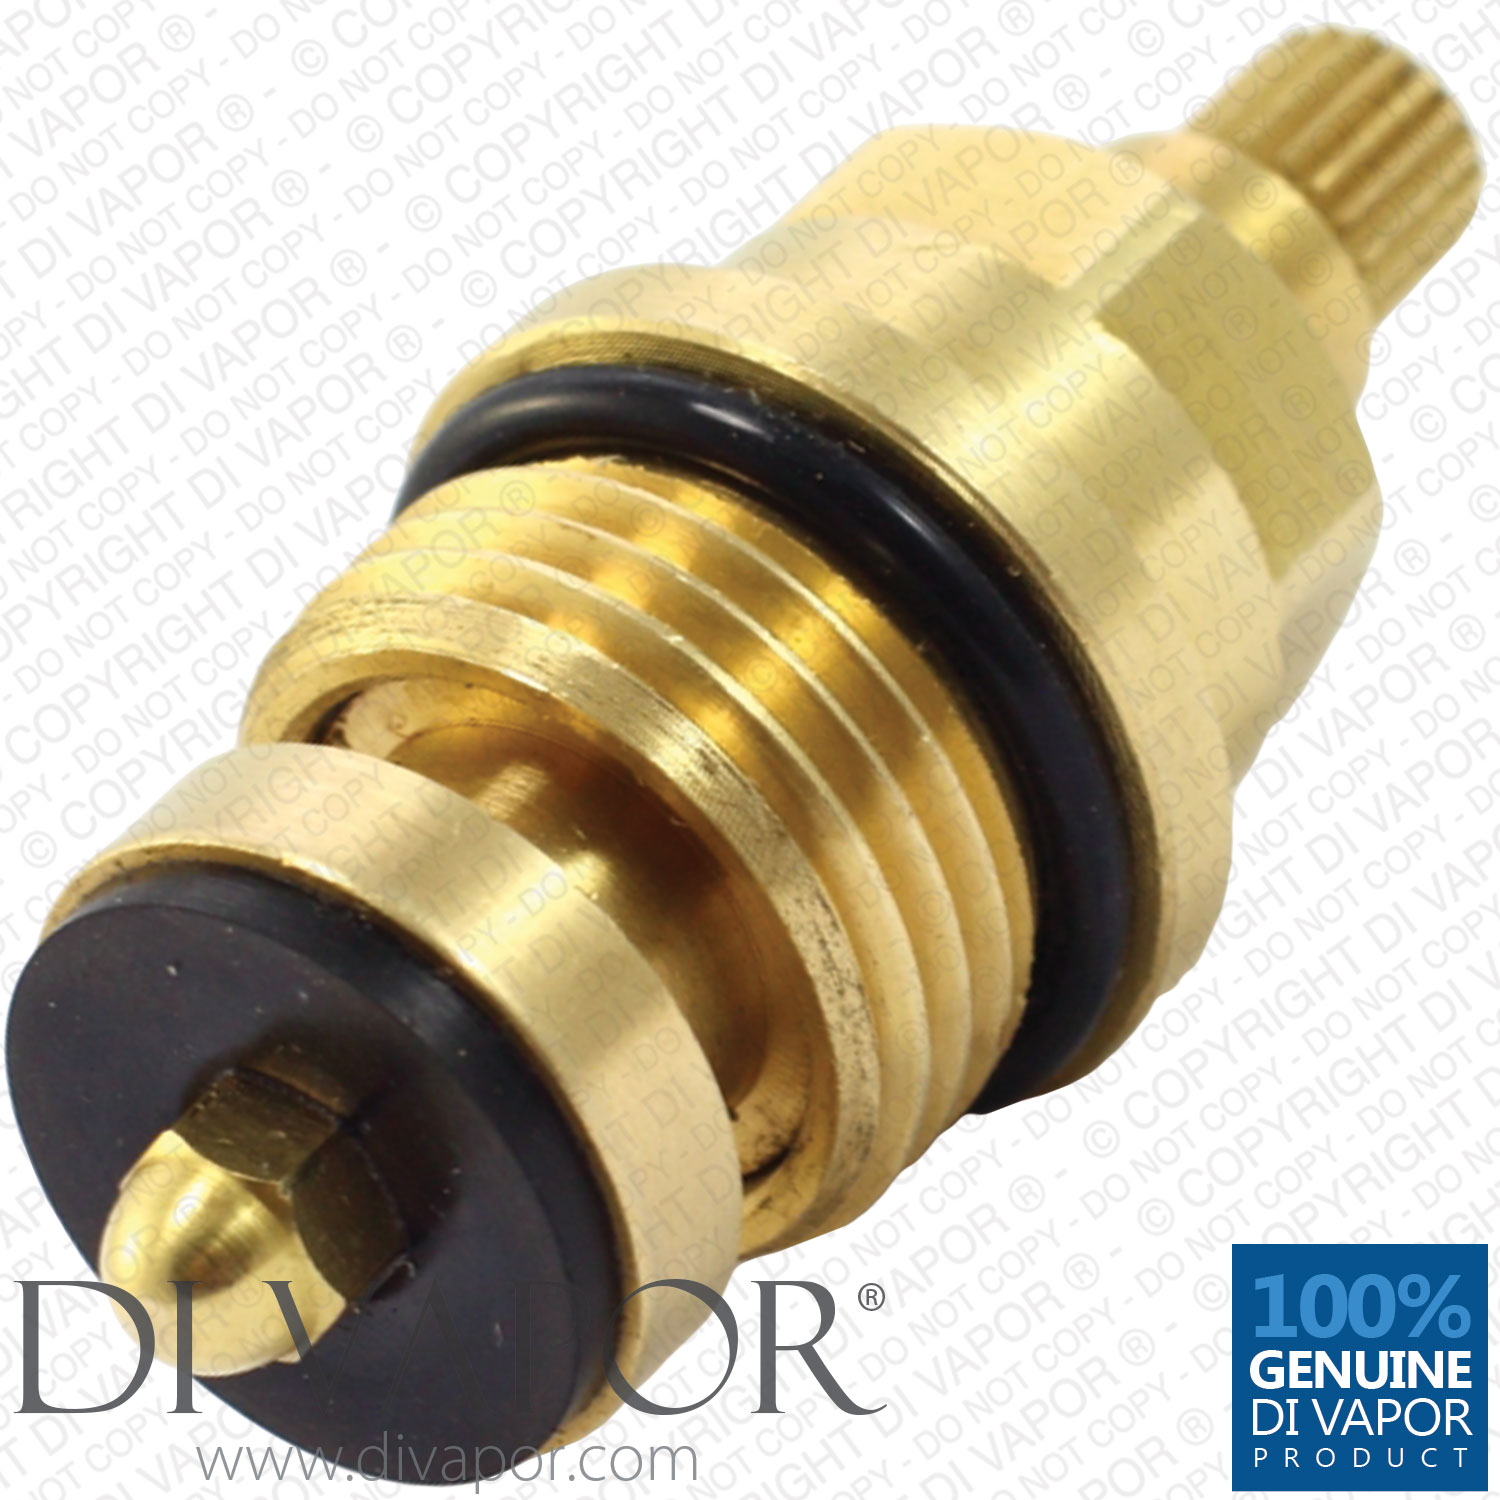 Threaded Tap Glands 24mm Suitable Flomasta 7960f